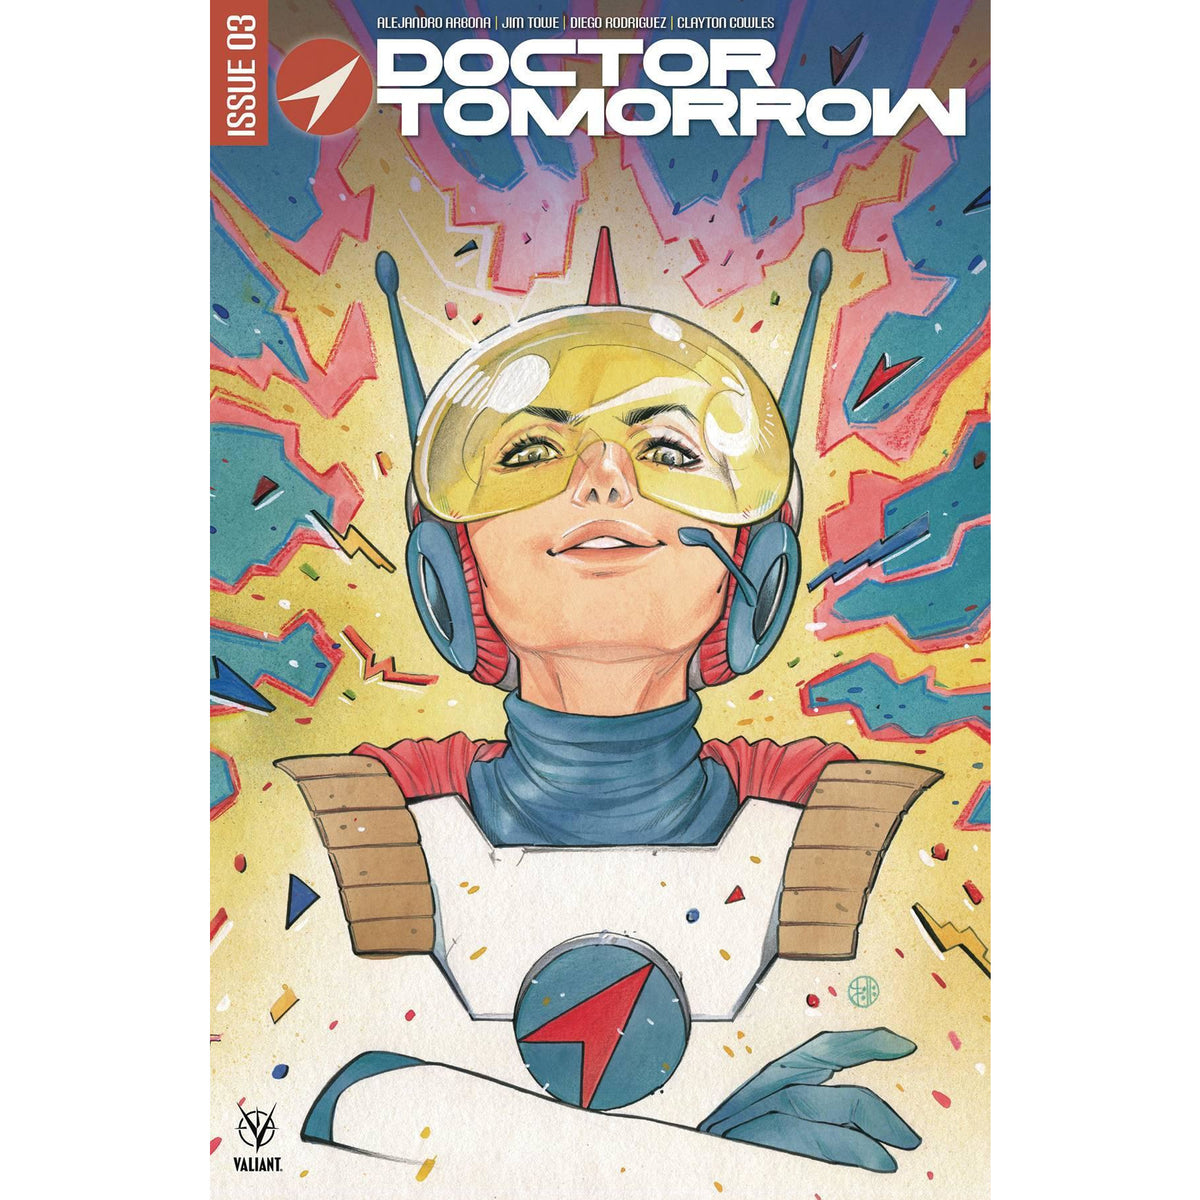 DOCTOR TOMORROW #3 (OF 5) PEACH MOMOKO VARIANT COVER B - VALIANT COMICS - NM